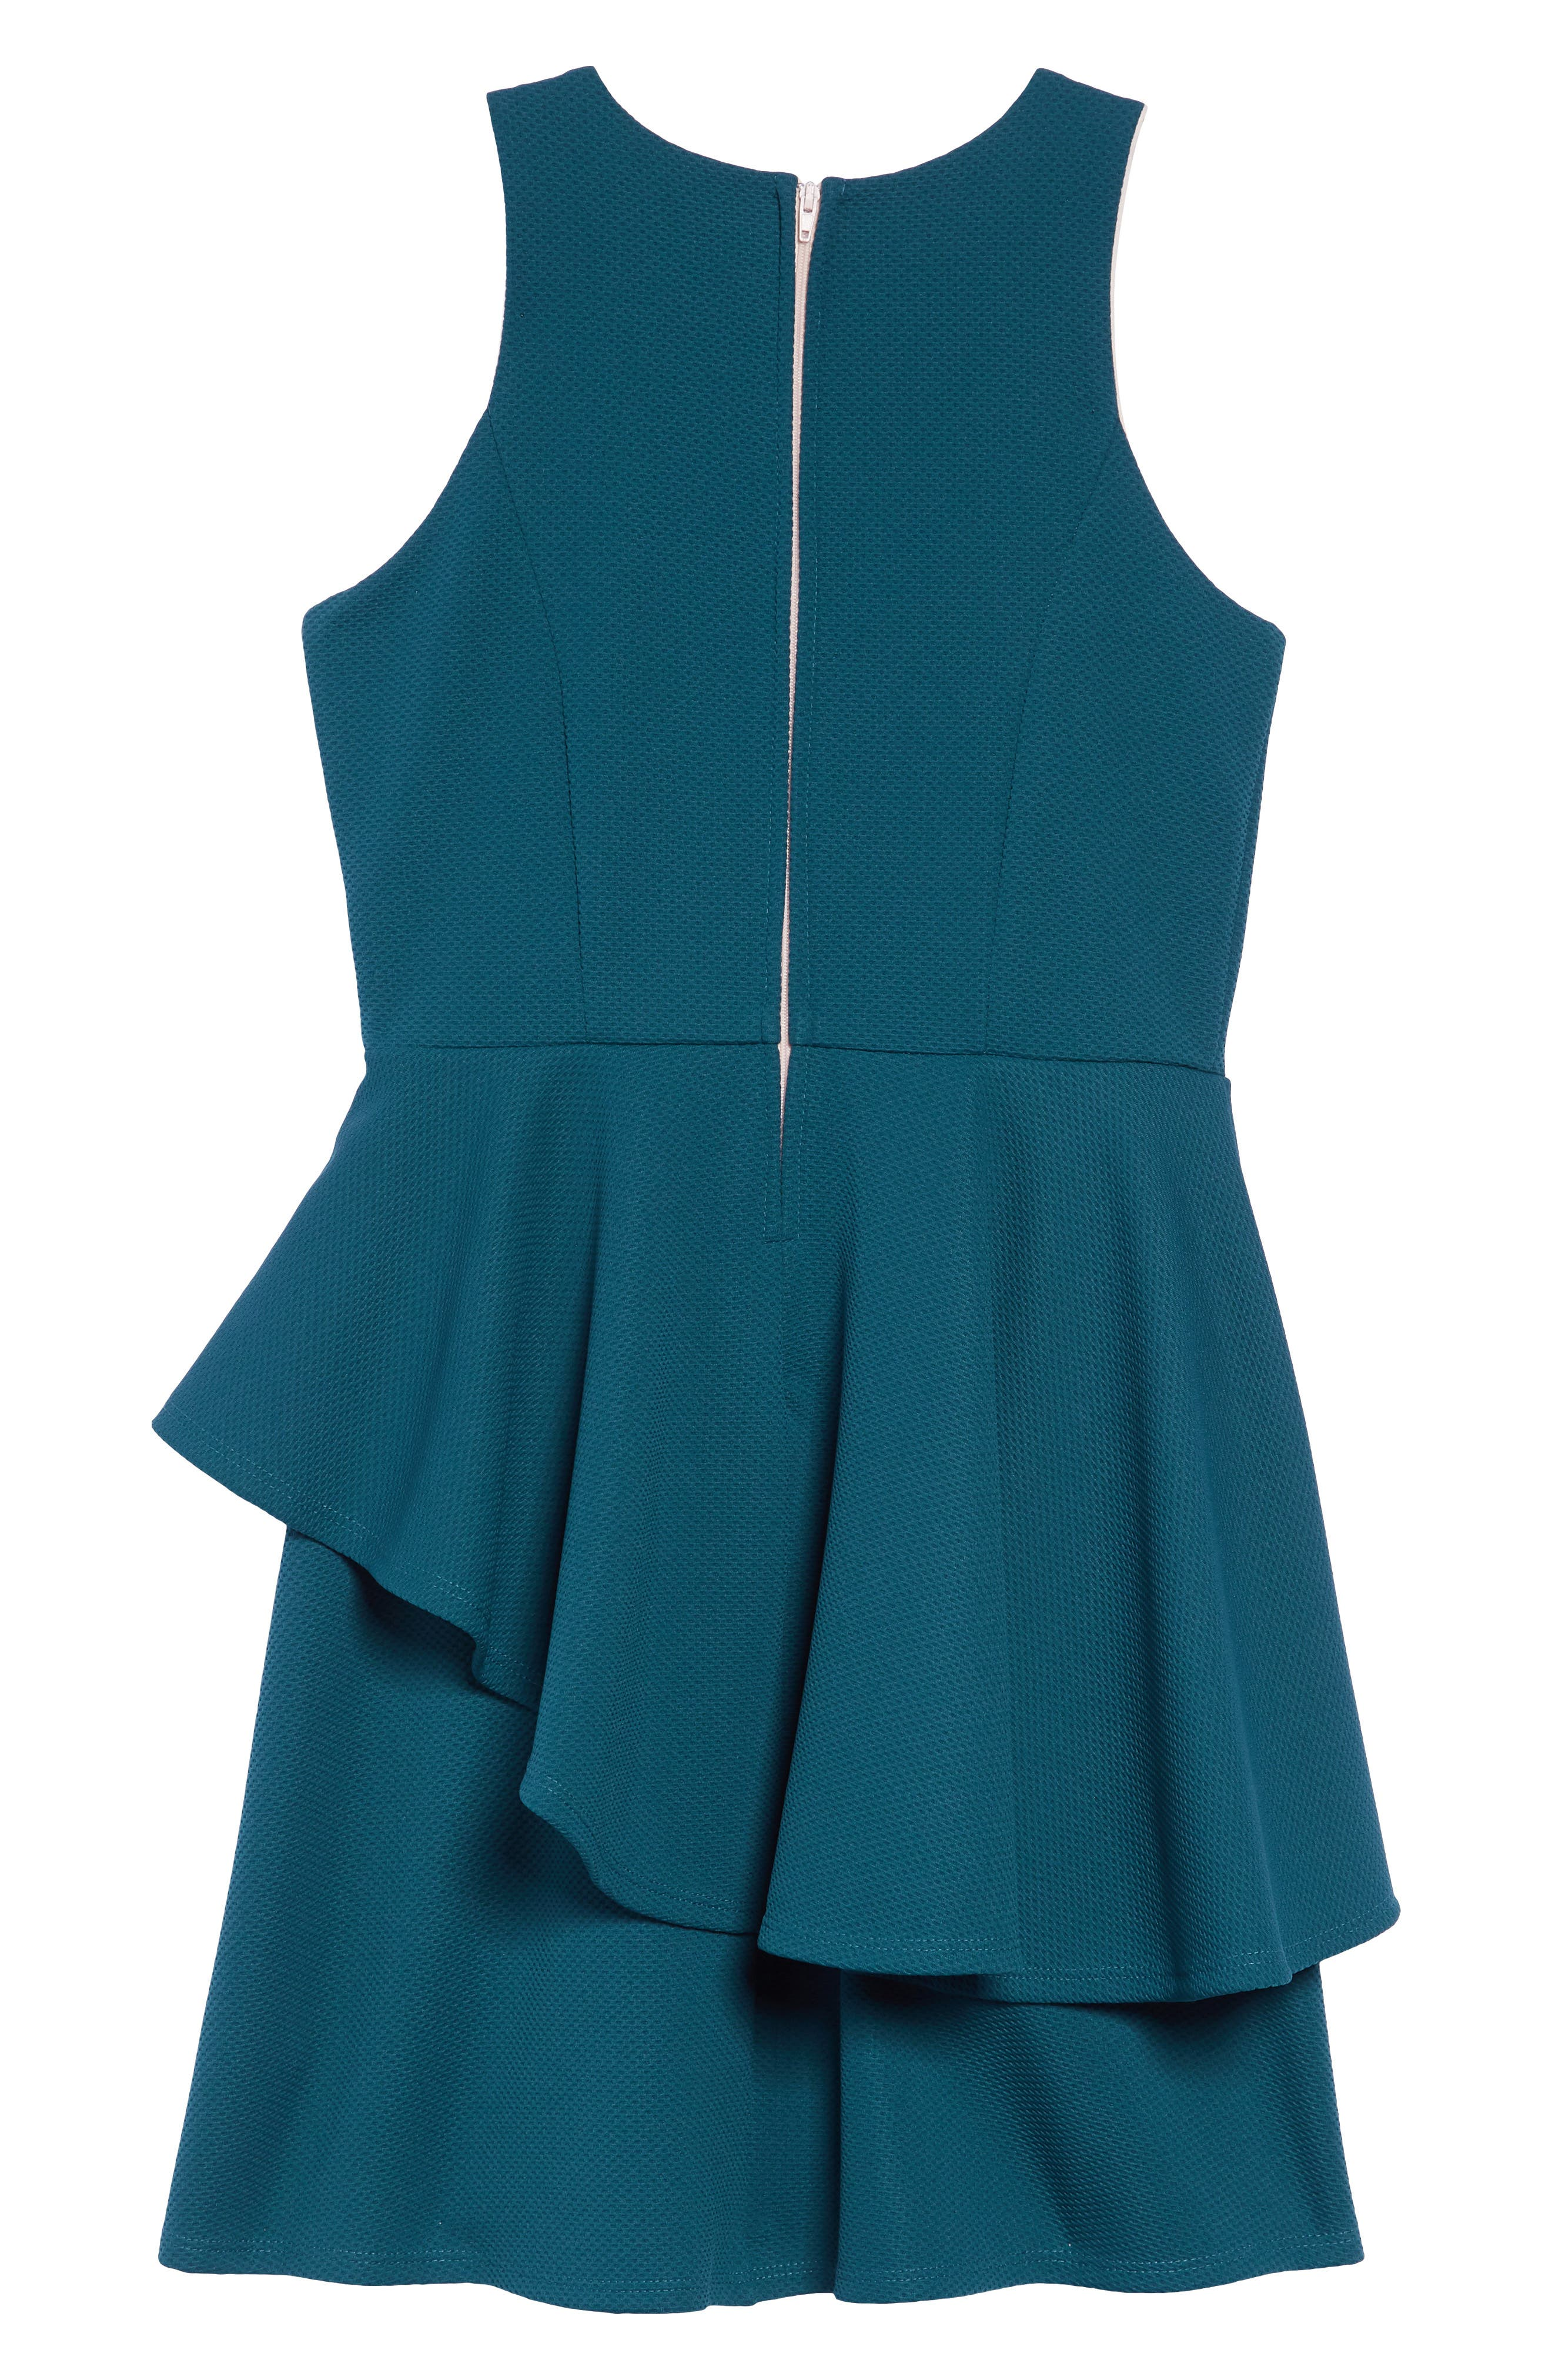 Textured Tiered Dress,                             Alternate thumbnail 2, color,                             TEAL/ BLUSH